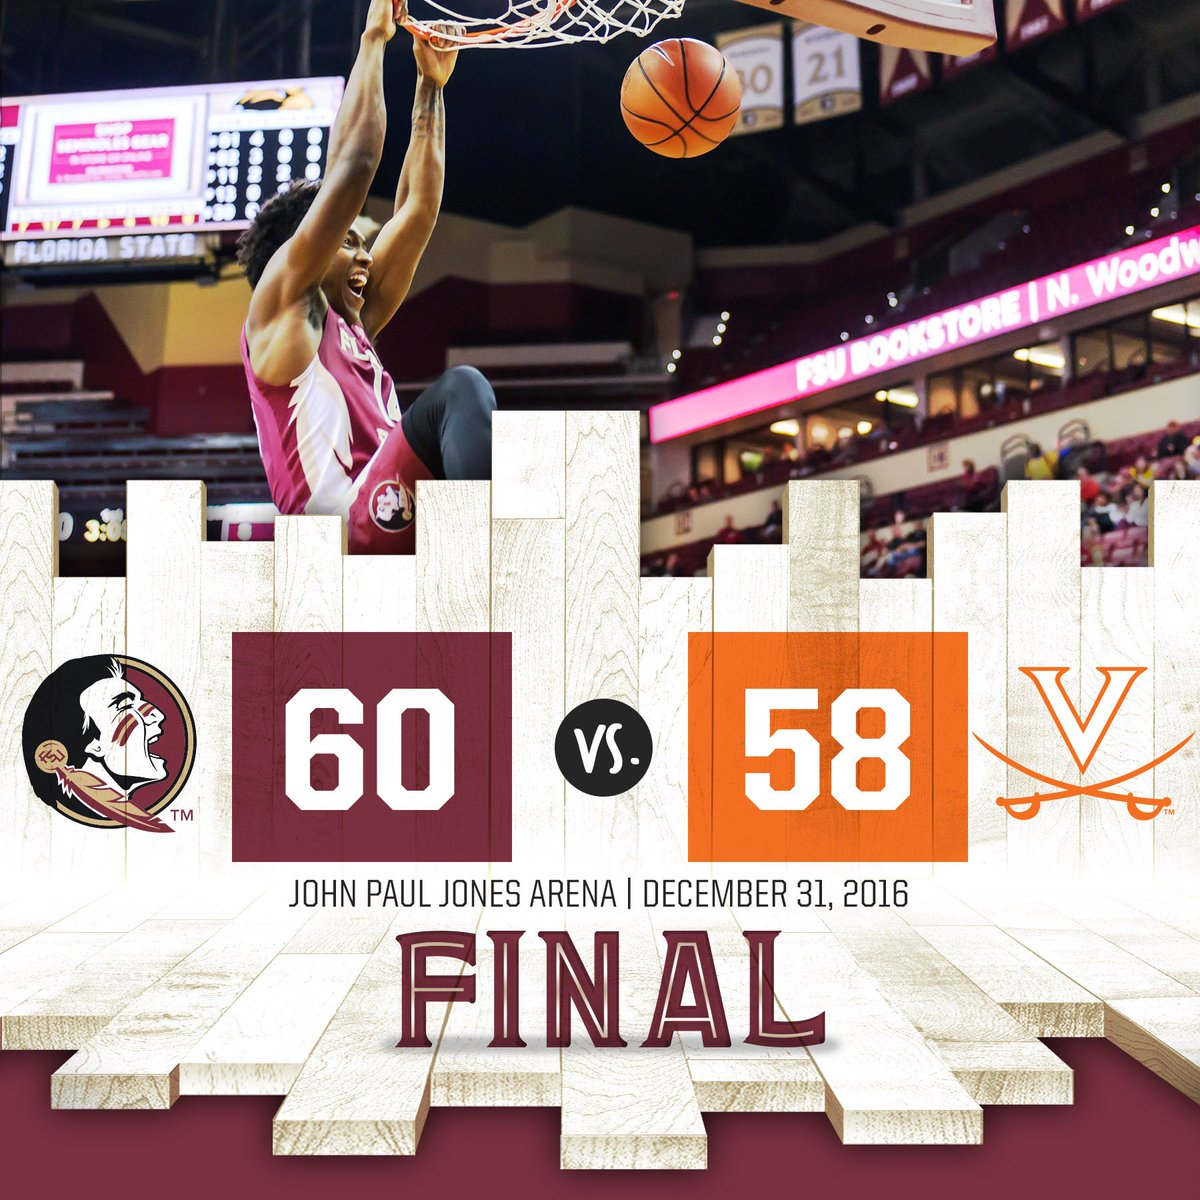 Spear Planted!!!!  #Noles WIN https://t.co/UkBICiVFDM